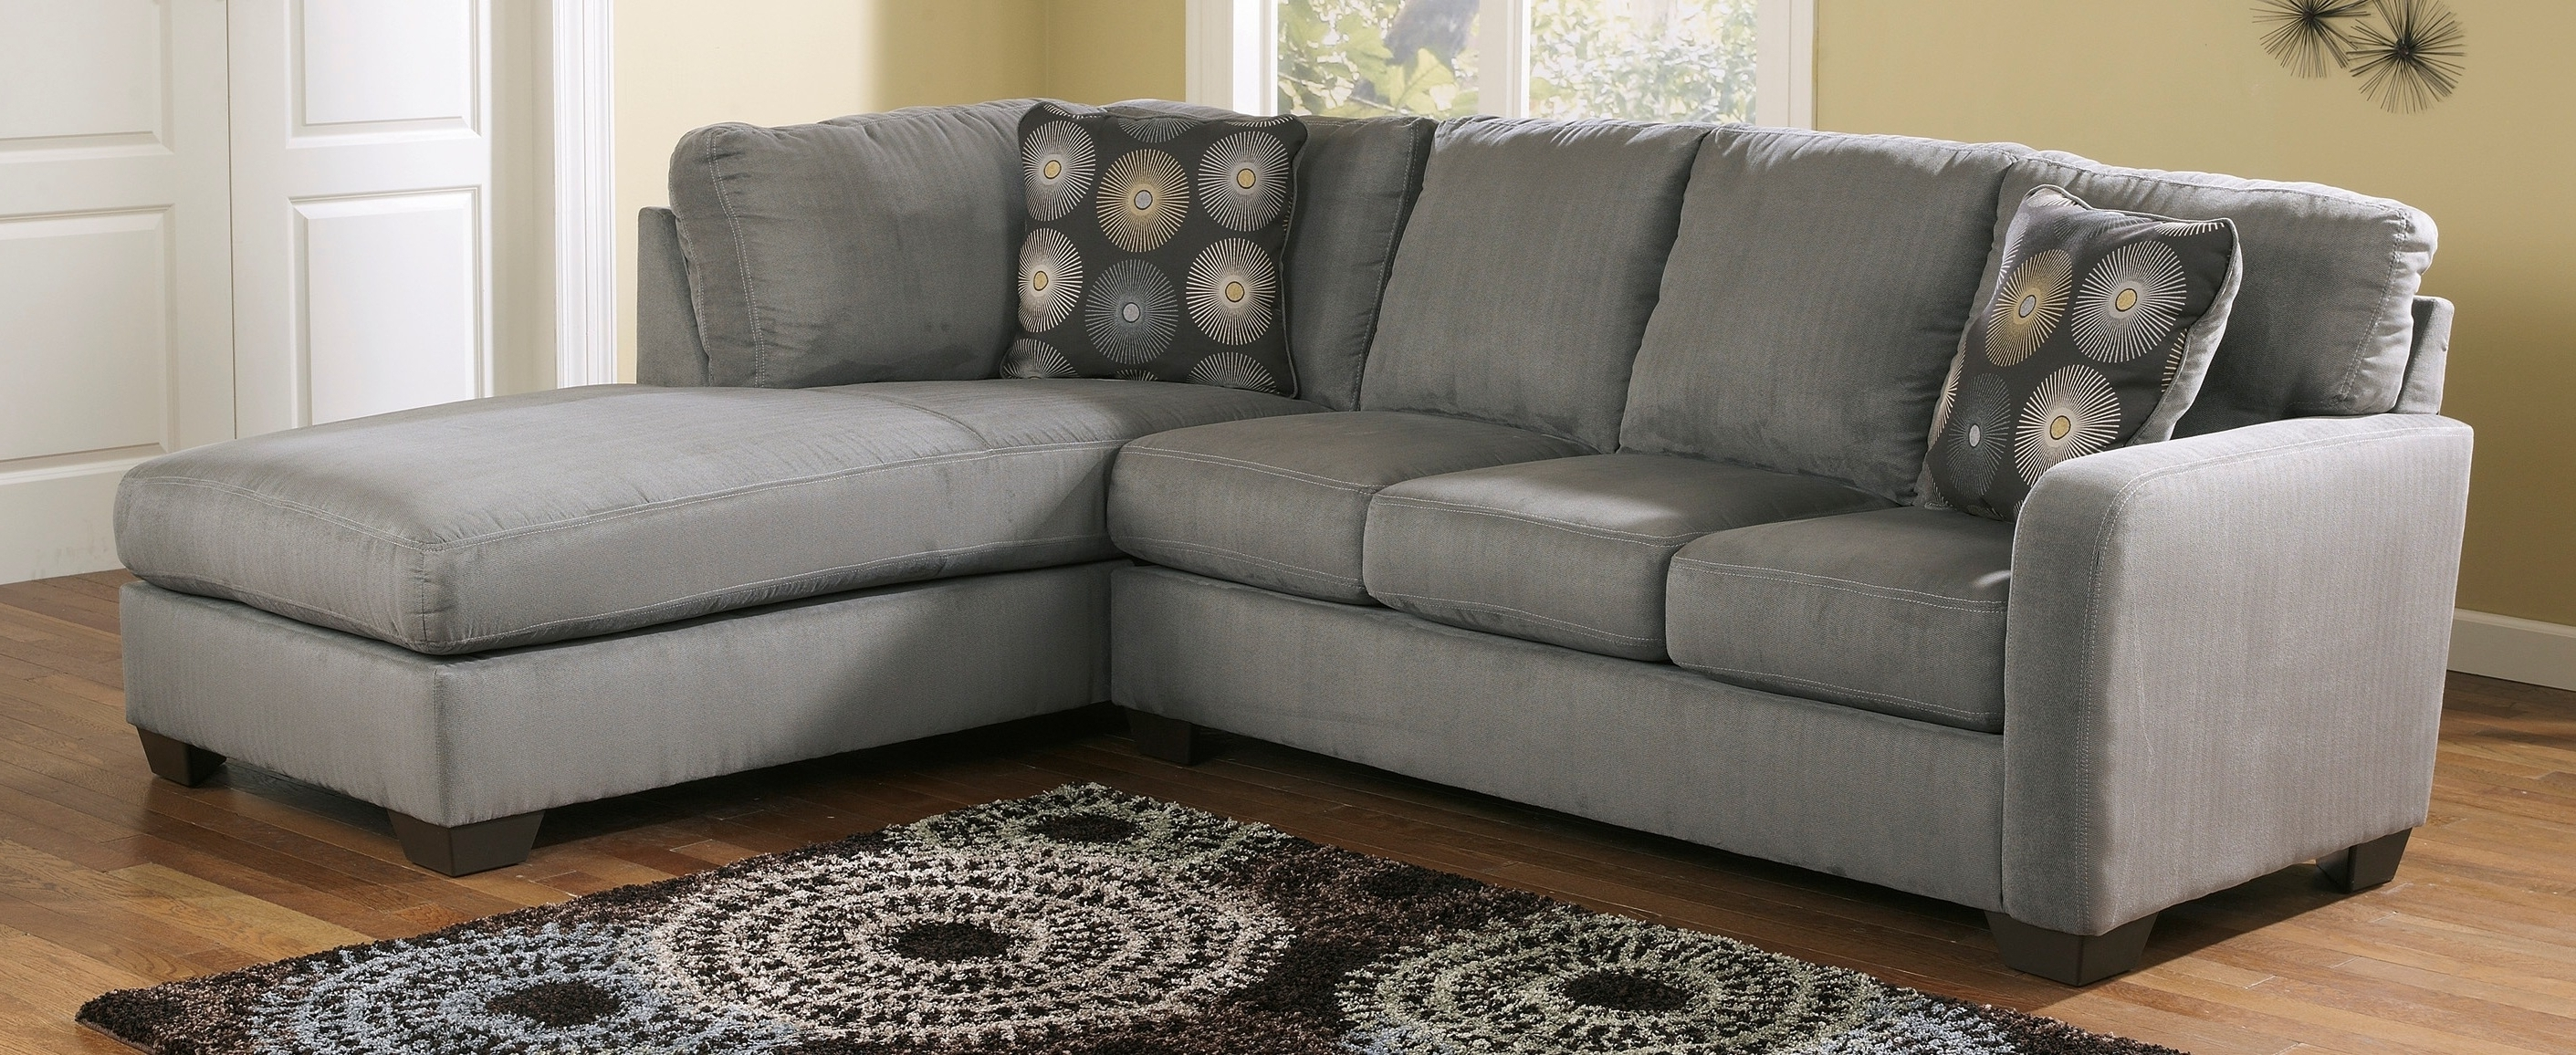 Fashionable Buy Ashley Furniture 7020066 7020017 Zella Charcoal Raf Corner Inside Charcoal Sectionals With Chaise (View 15 of 15)